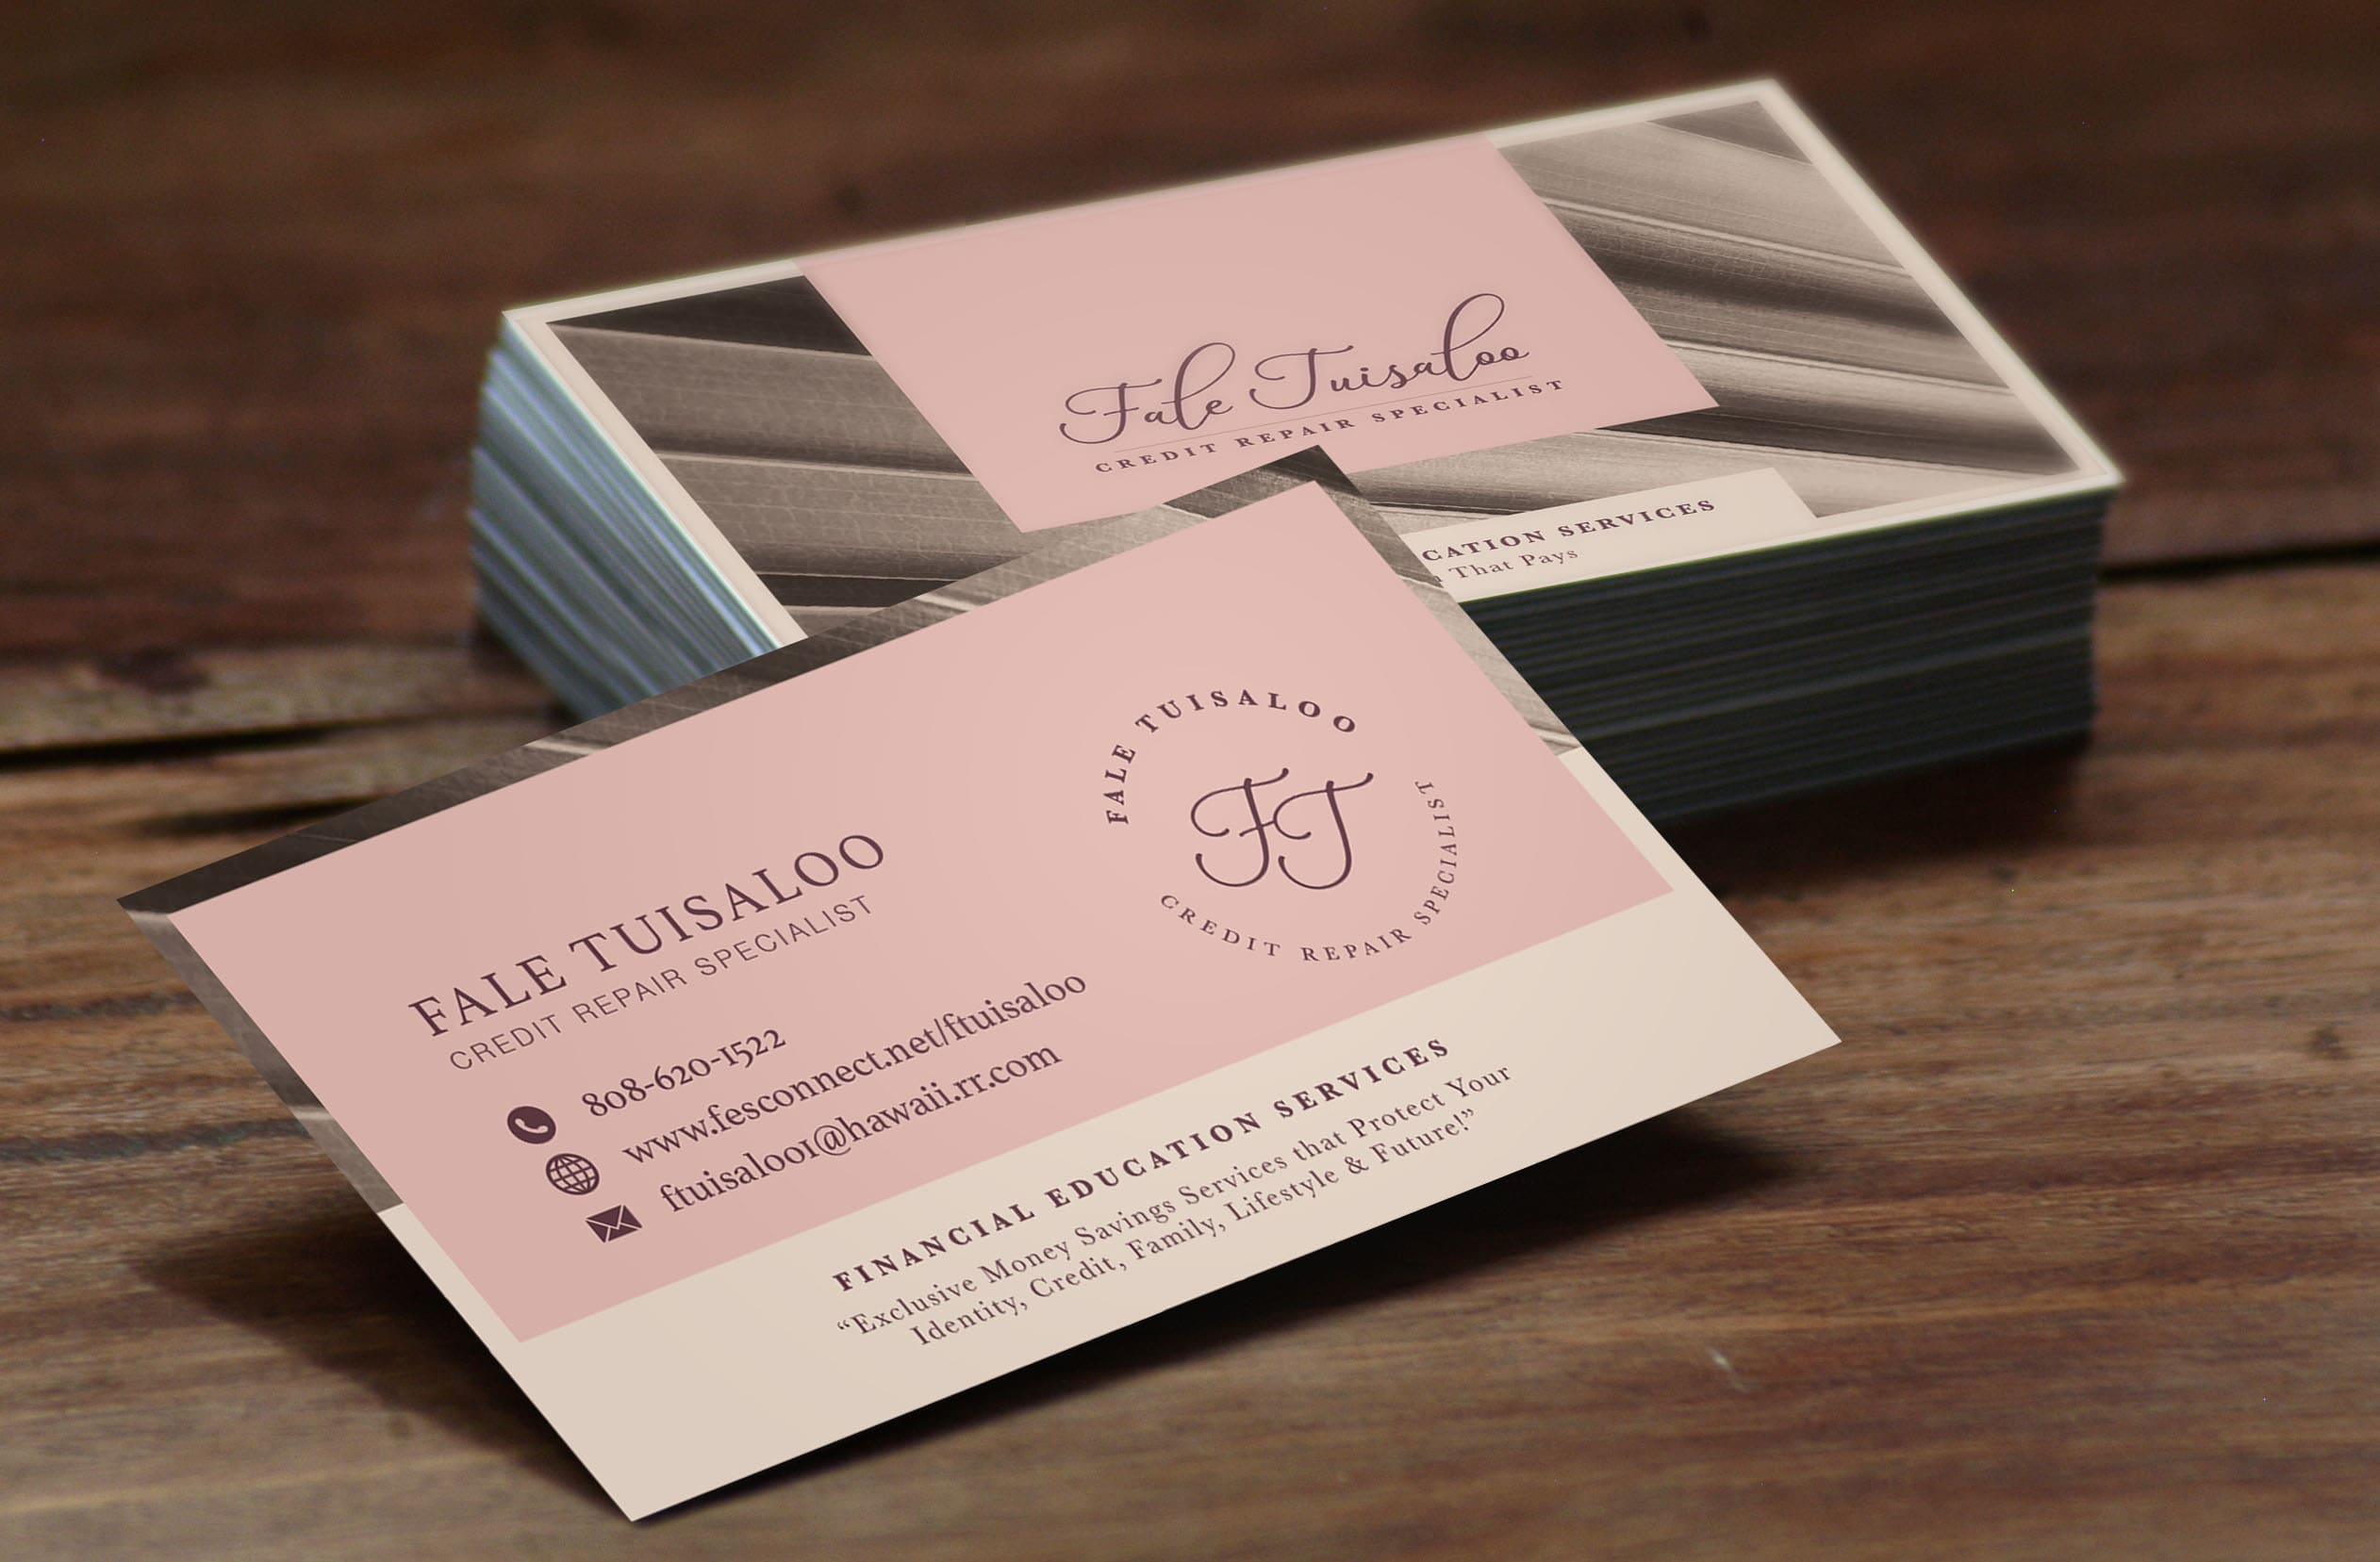 Do Business Card Design According To Your Brand Style By Vincedionisio84